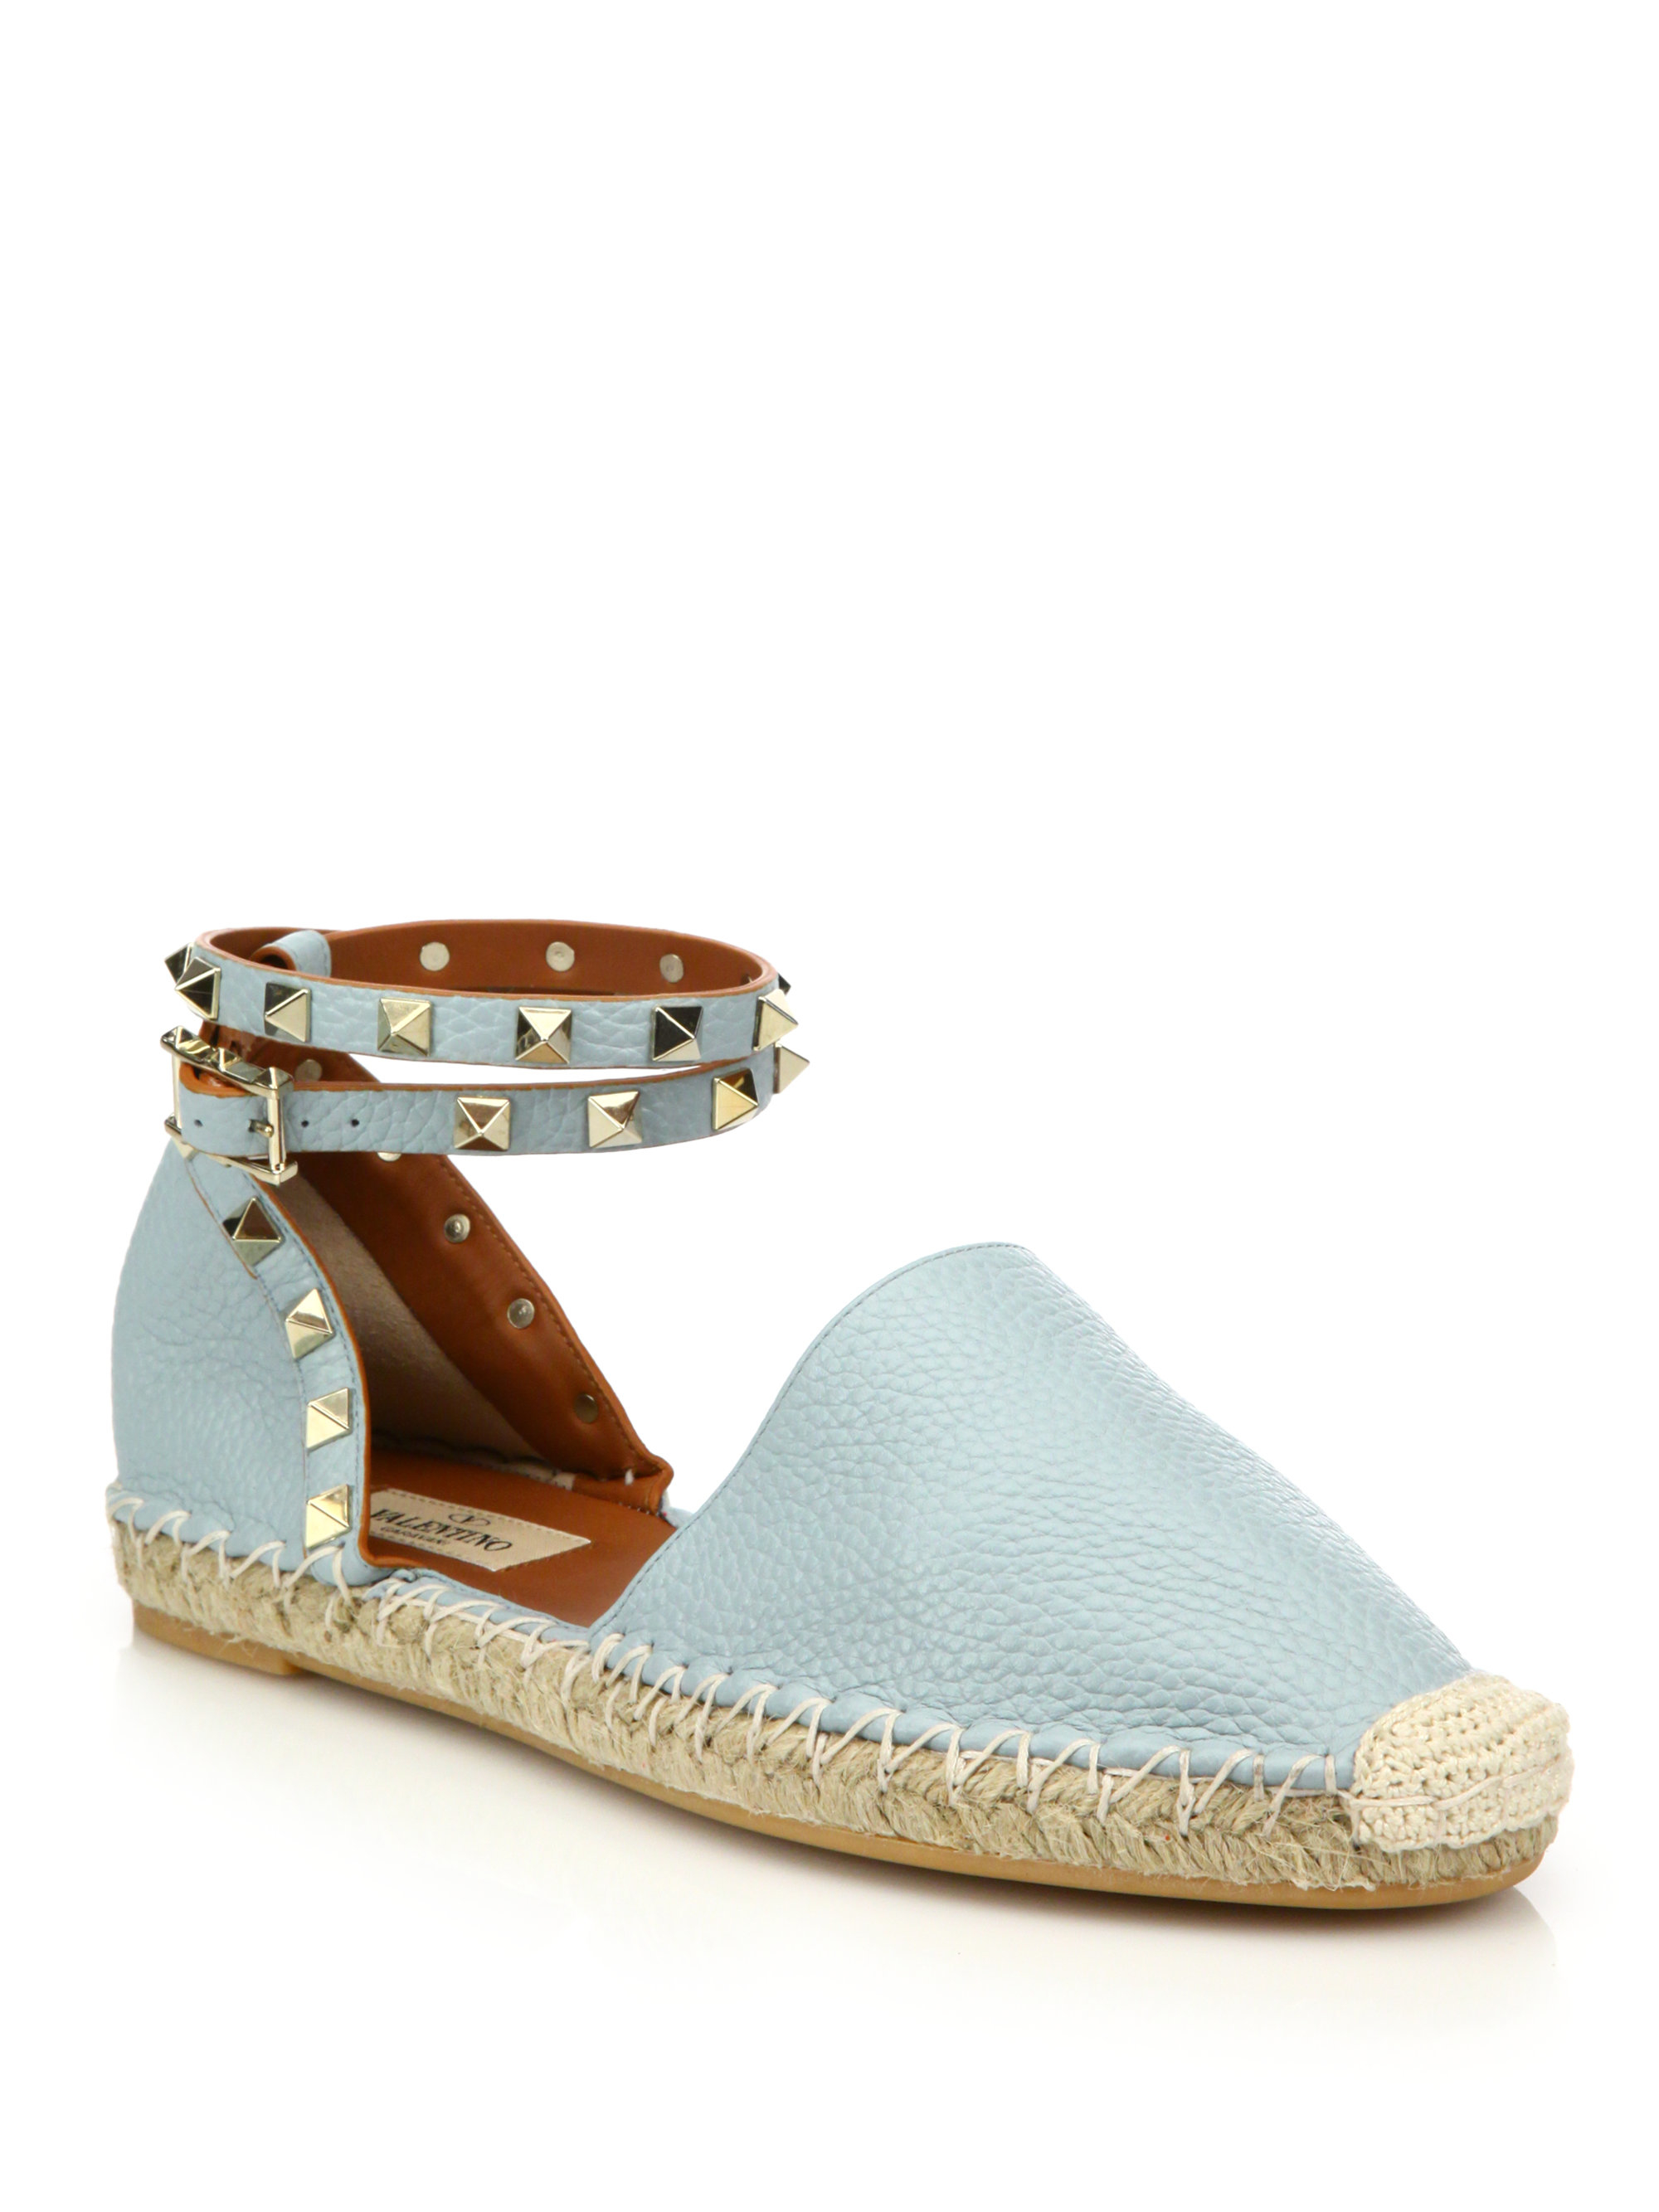 329f49c2b18d Lyst - Valentino Rockstud Leather Ankle-wrap Espadrille Flats in Blue